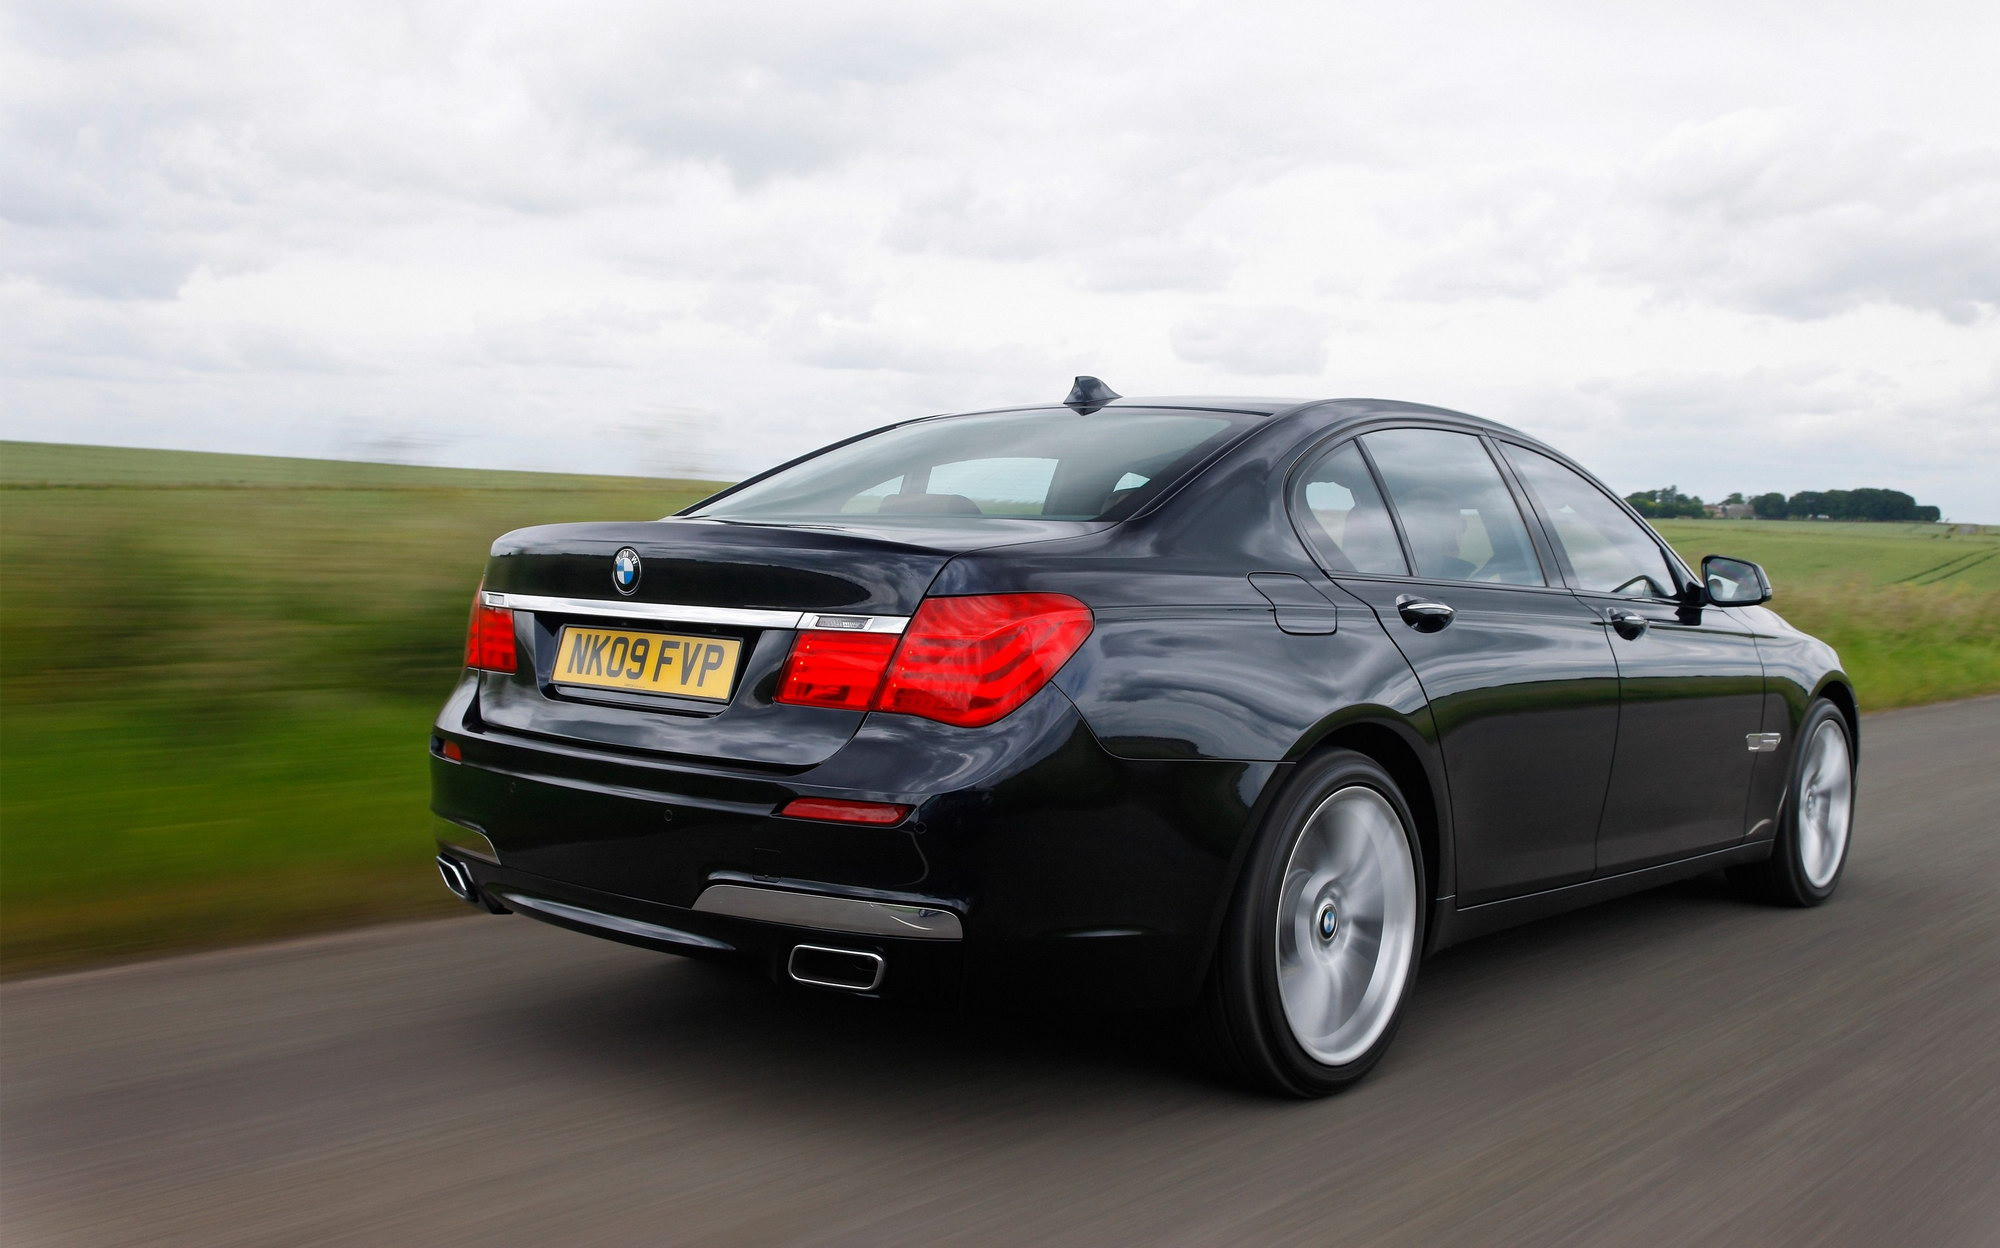 2010 BMW 740d XDrive Gallery 358140 | Top Speed